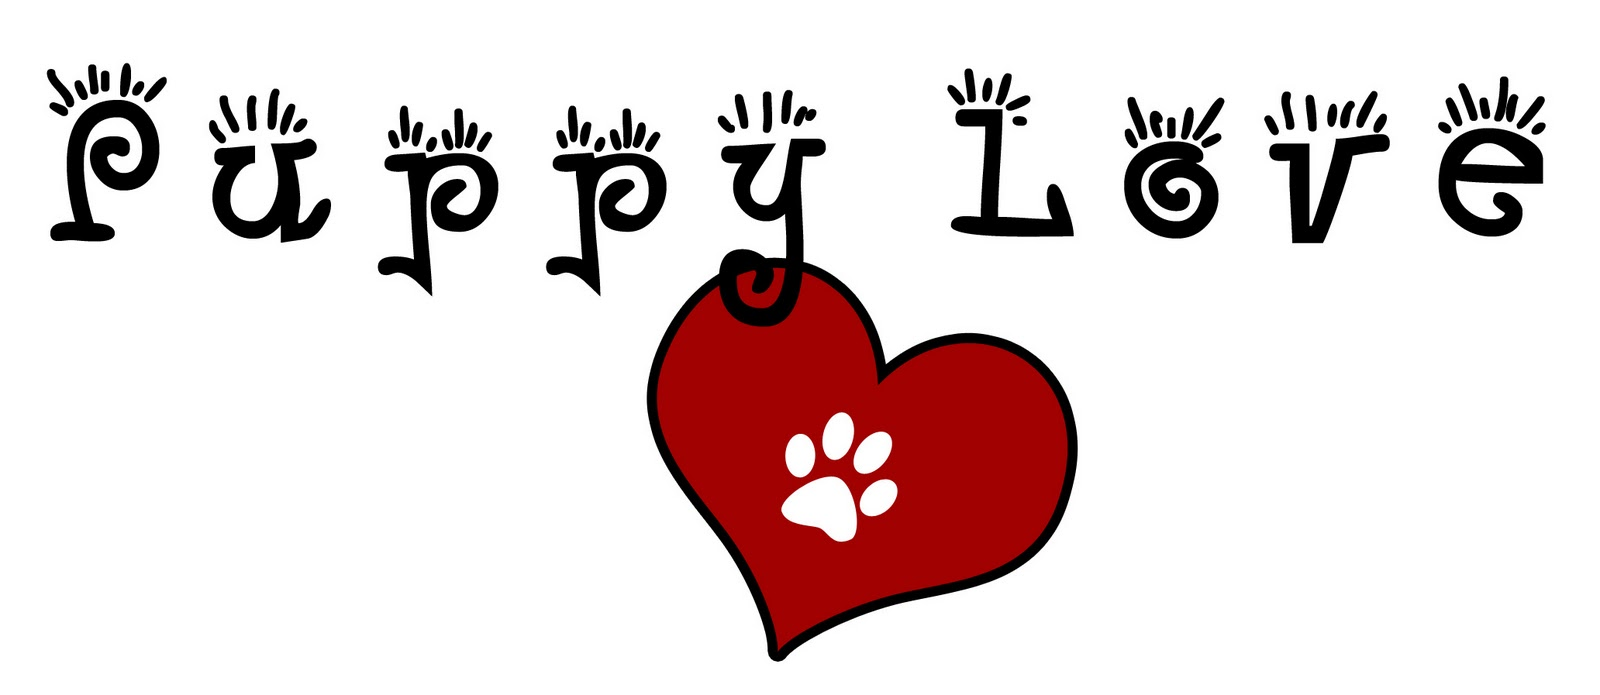 And they call it puppy love clipart png My Puppy Love   A Pertinacious Dreamer png